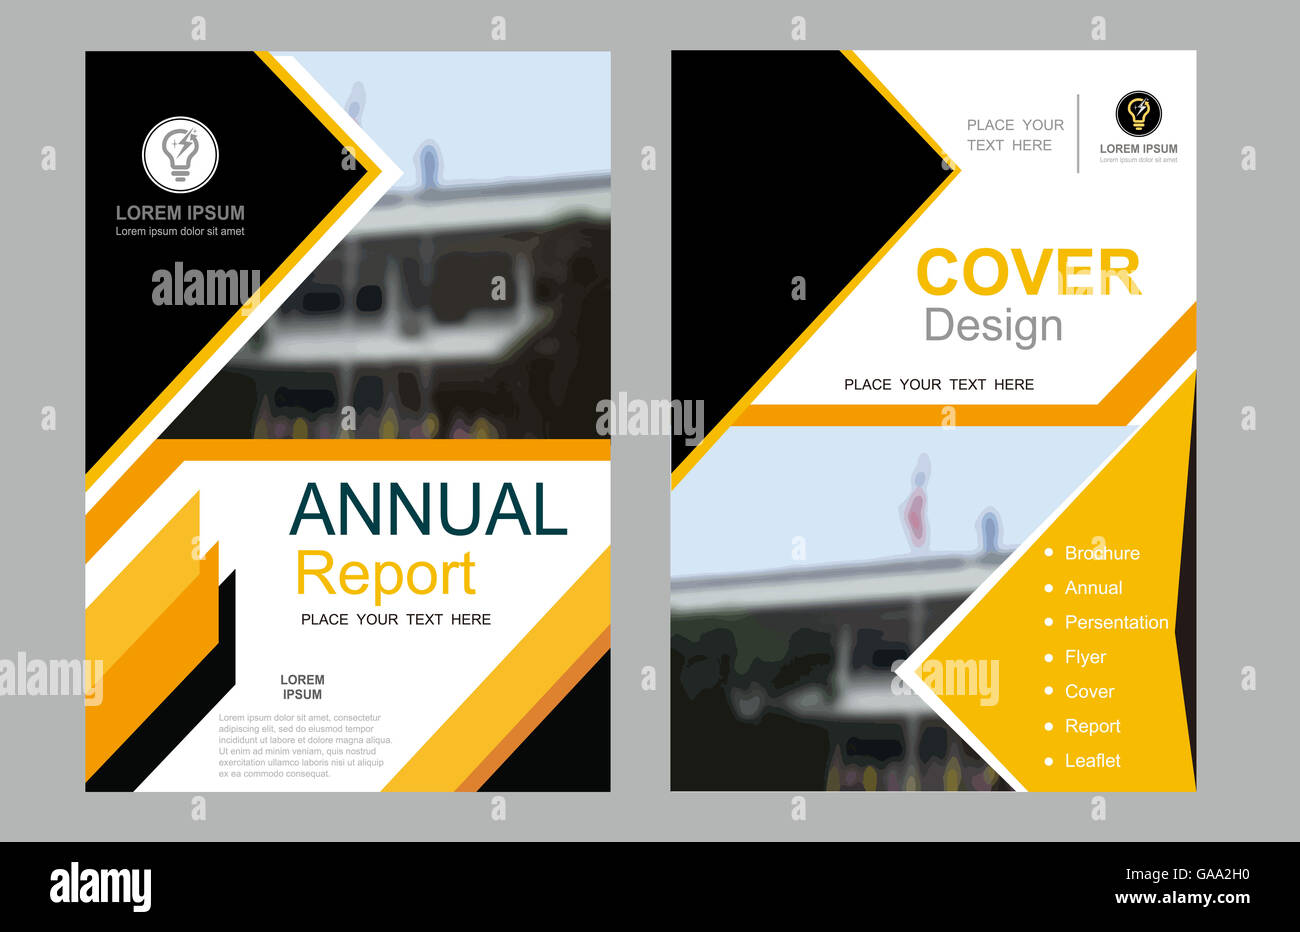 cover  design  annual  layout  flyer  book  ad  page  vector  poster stock photo  109630332